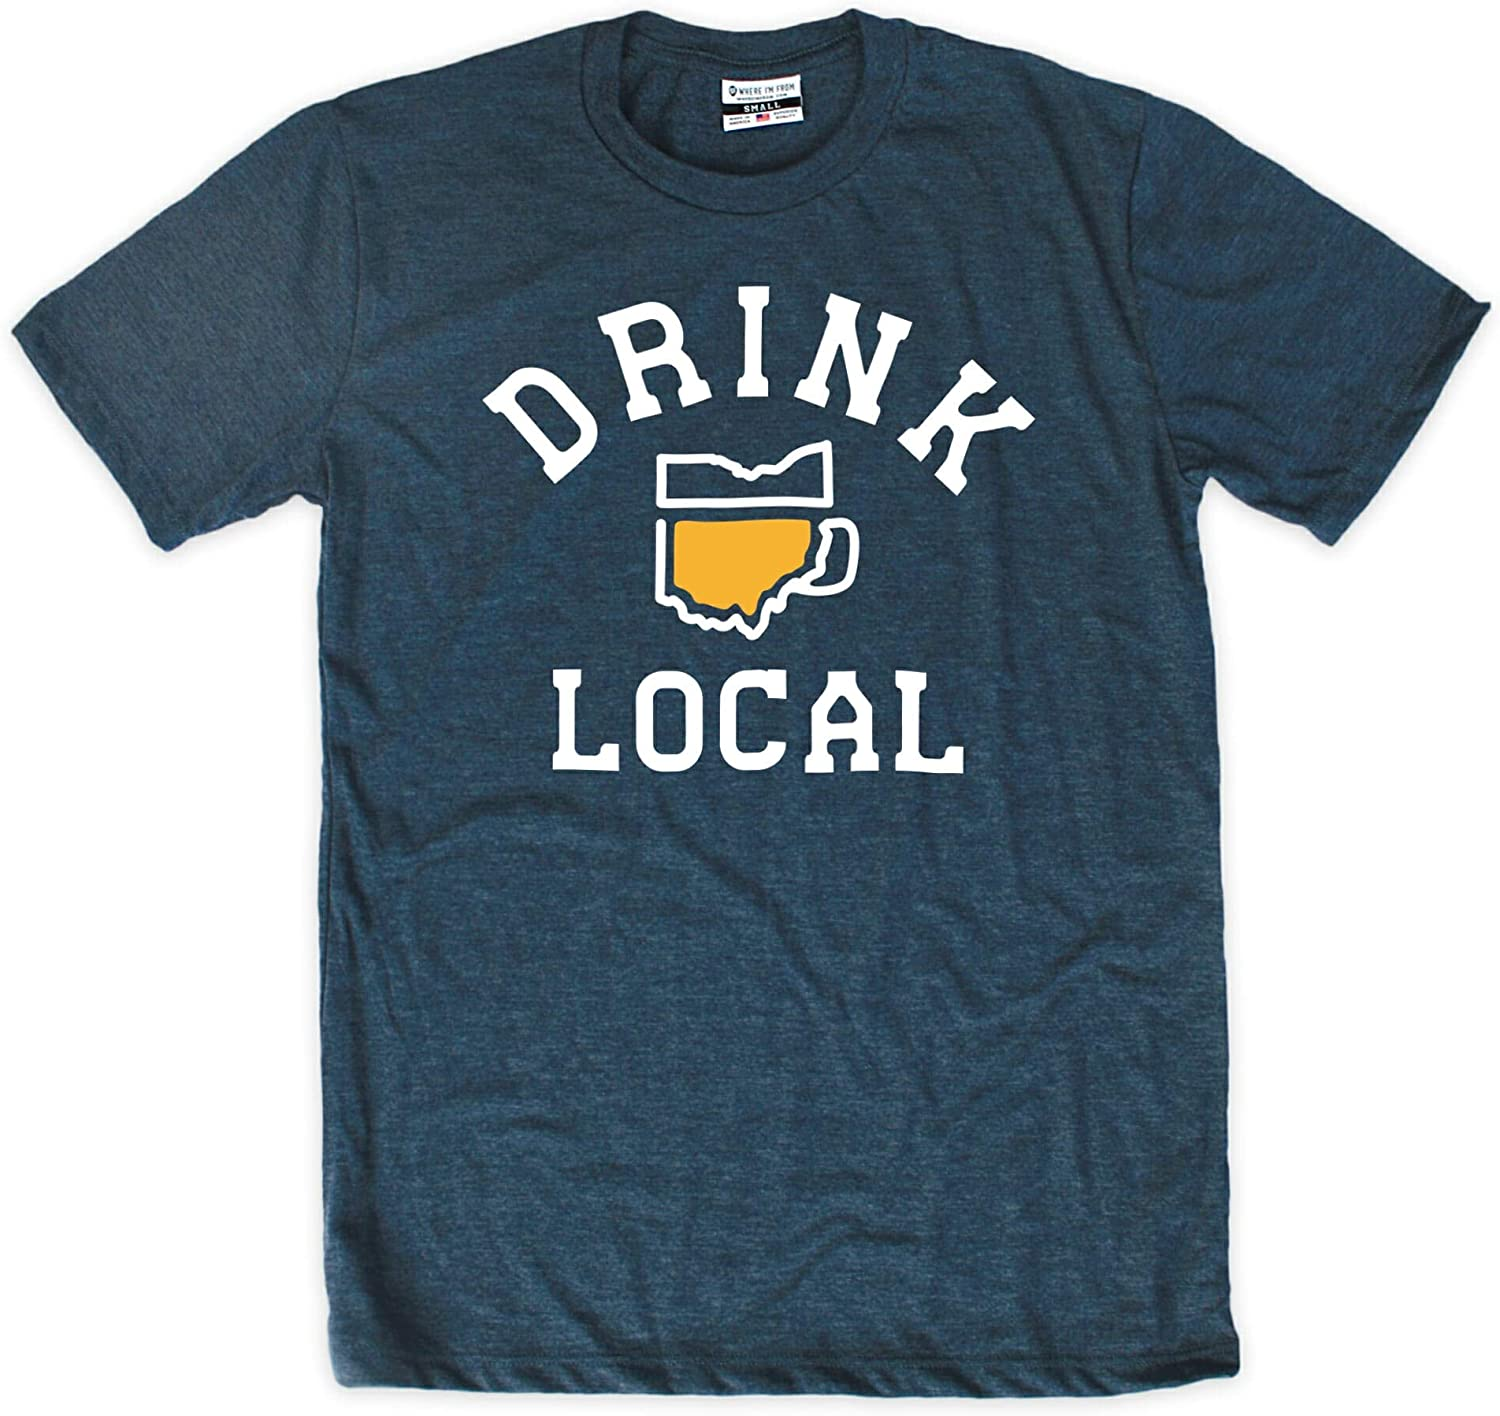 Where I'm From Beer Shirt Drink Local Ohio T-Shirt | Short Sleeve Graphic Tee for Beer Lovers